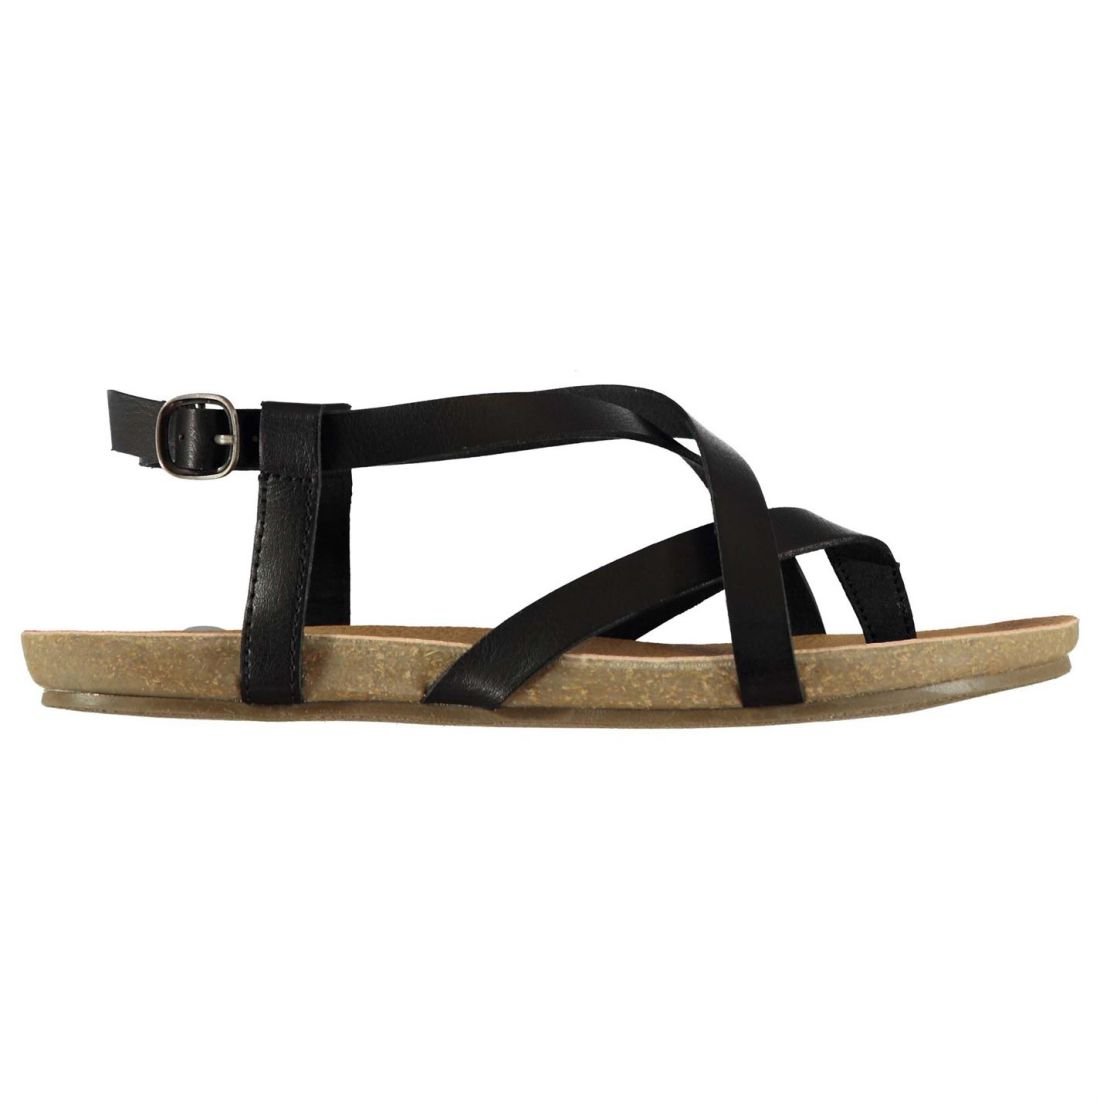 4920a8d3cabb Image is loading Blowfish-Womens-Golden-Sandals-Flat-Buckle-Fastening-Strap